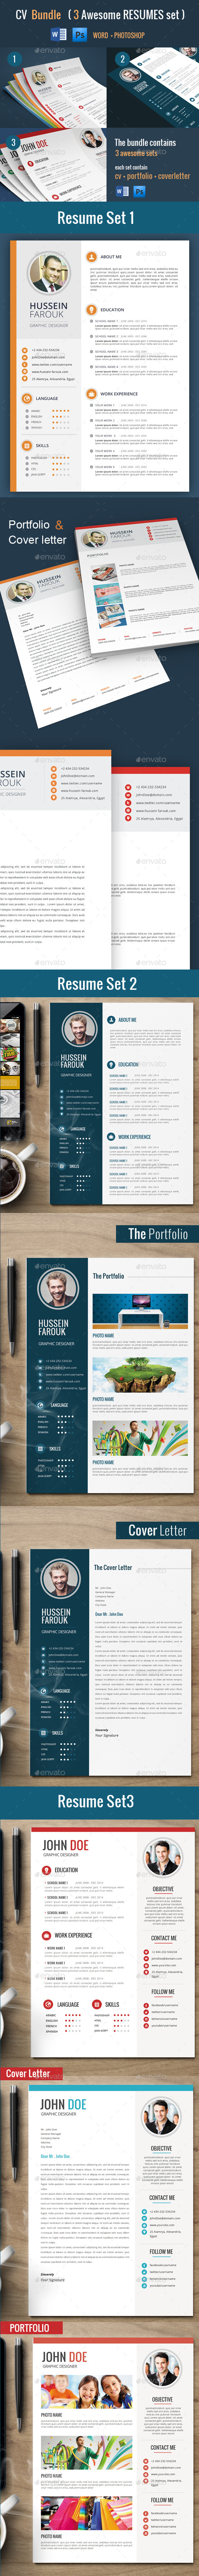 GraphicRiver Cv Bundle 3 Resume Sets 11481340